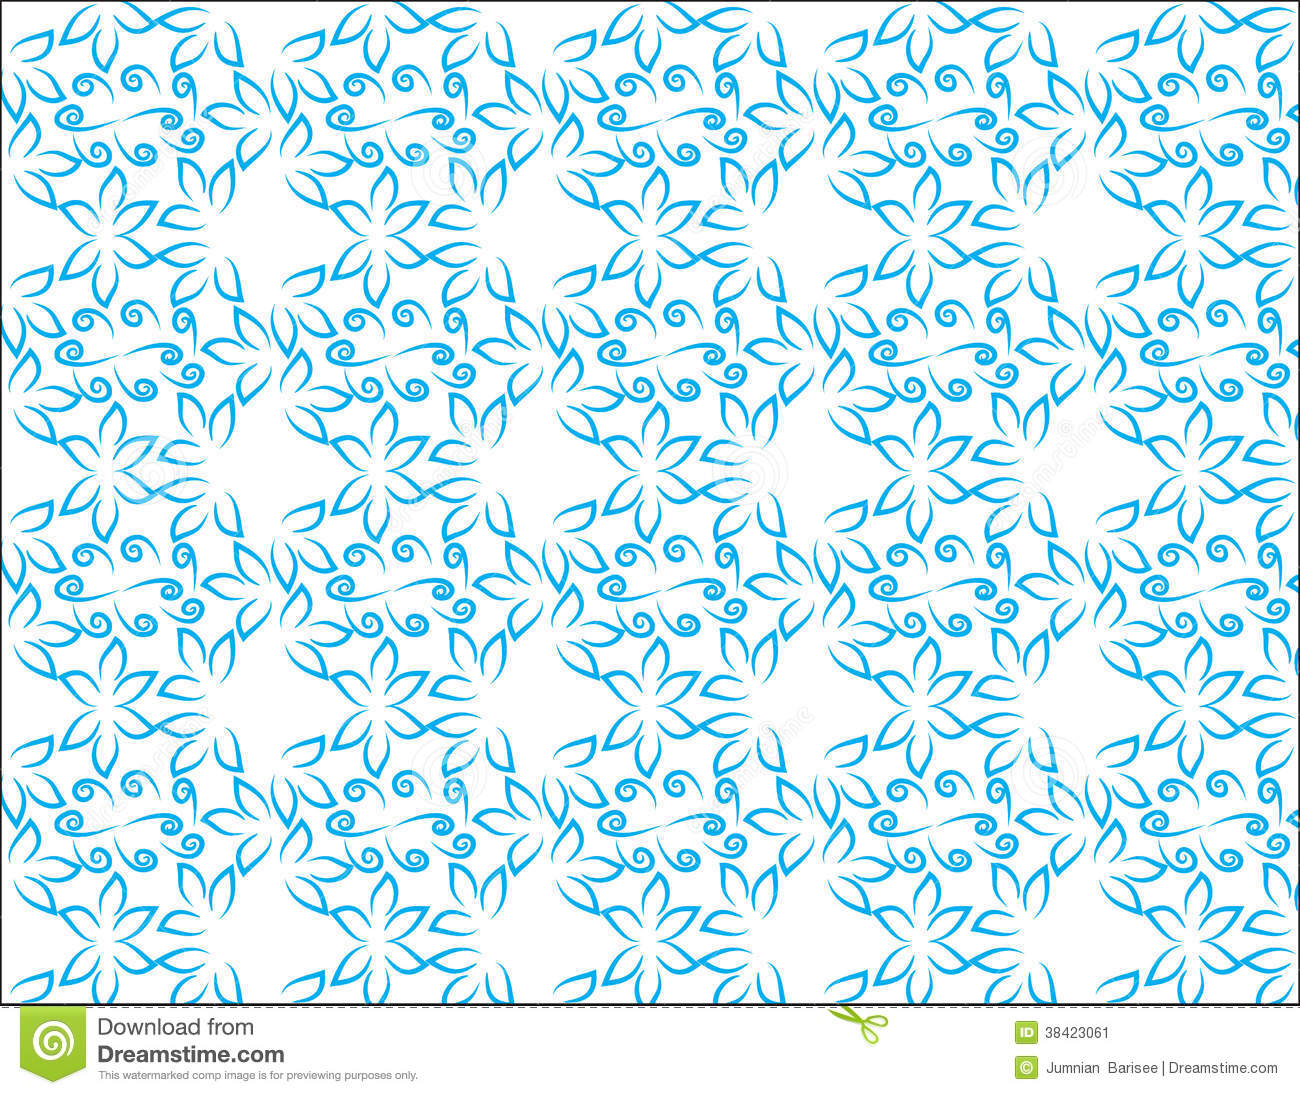 Blue patterns backgrounds